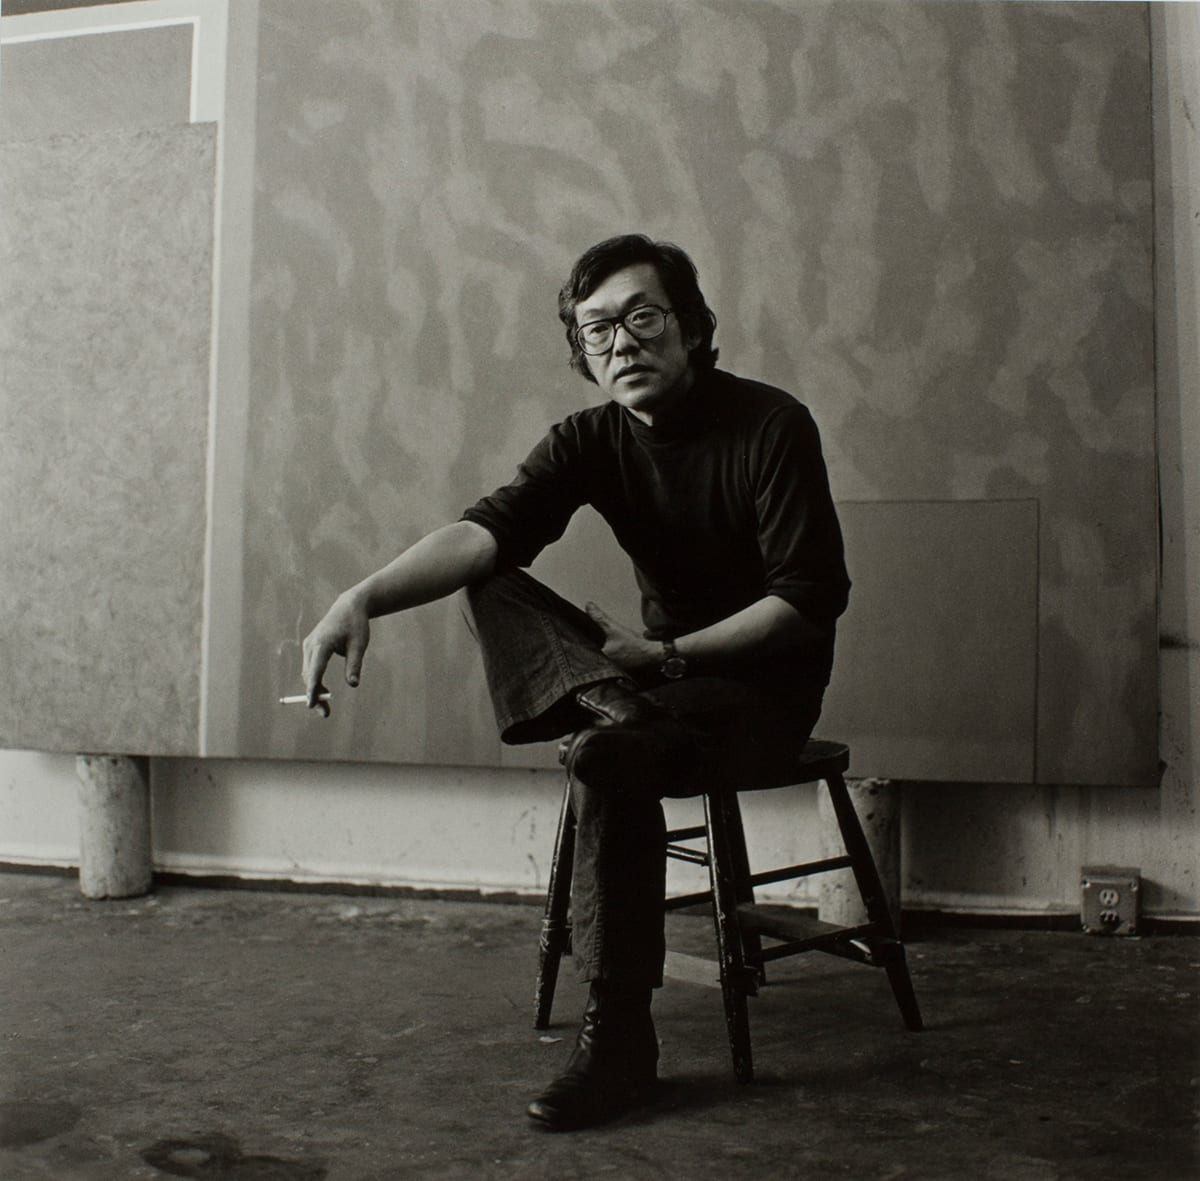 Mary Randlett, Portrait of Frank Okada, 1972. Gelatin silver print, 10 3/8 x 10 9/16 in, black-and-white square portrait of the artist, a Japanese-American male perched on stool, right foot crossed onto his left knee, in front of a large painting. He wears clothes indicative of the time: dark flared pants, leather boots, large glasses, a dark collared shirt with sleeves rolled up, and holds a lit cigarette in his right hand. He gazes into the middle distance to the left of the viewer.